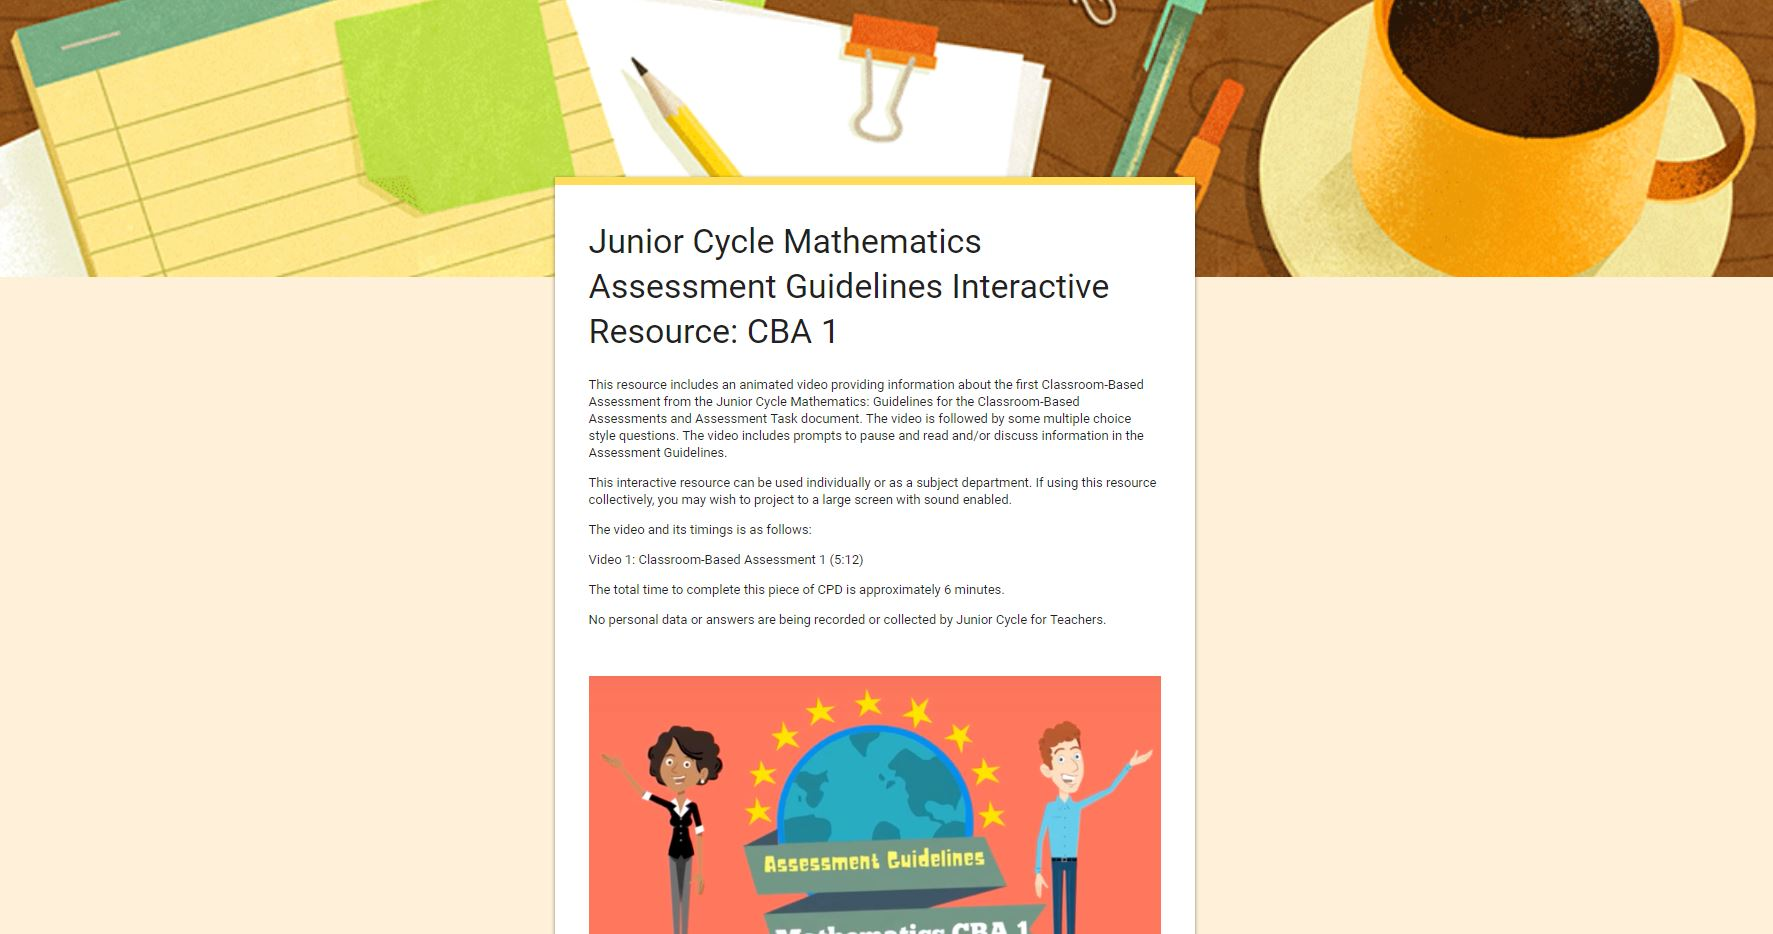 Assessment Guidelines Interactive Resource - Section Two CBA 1